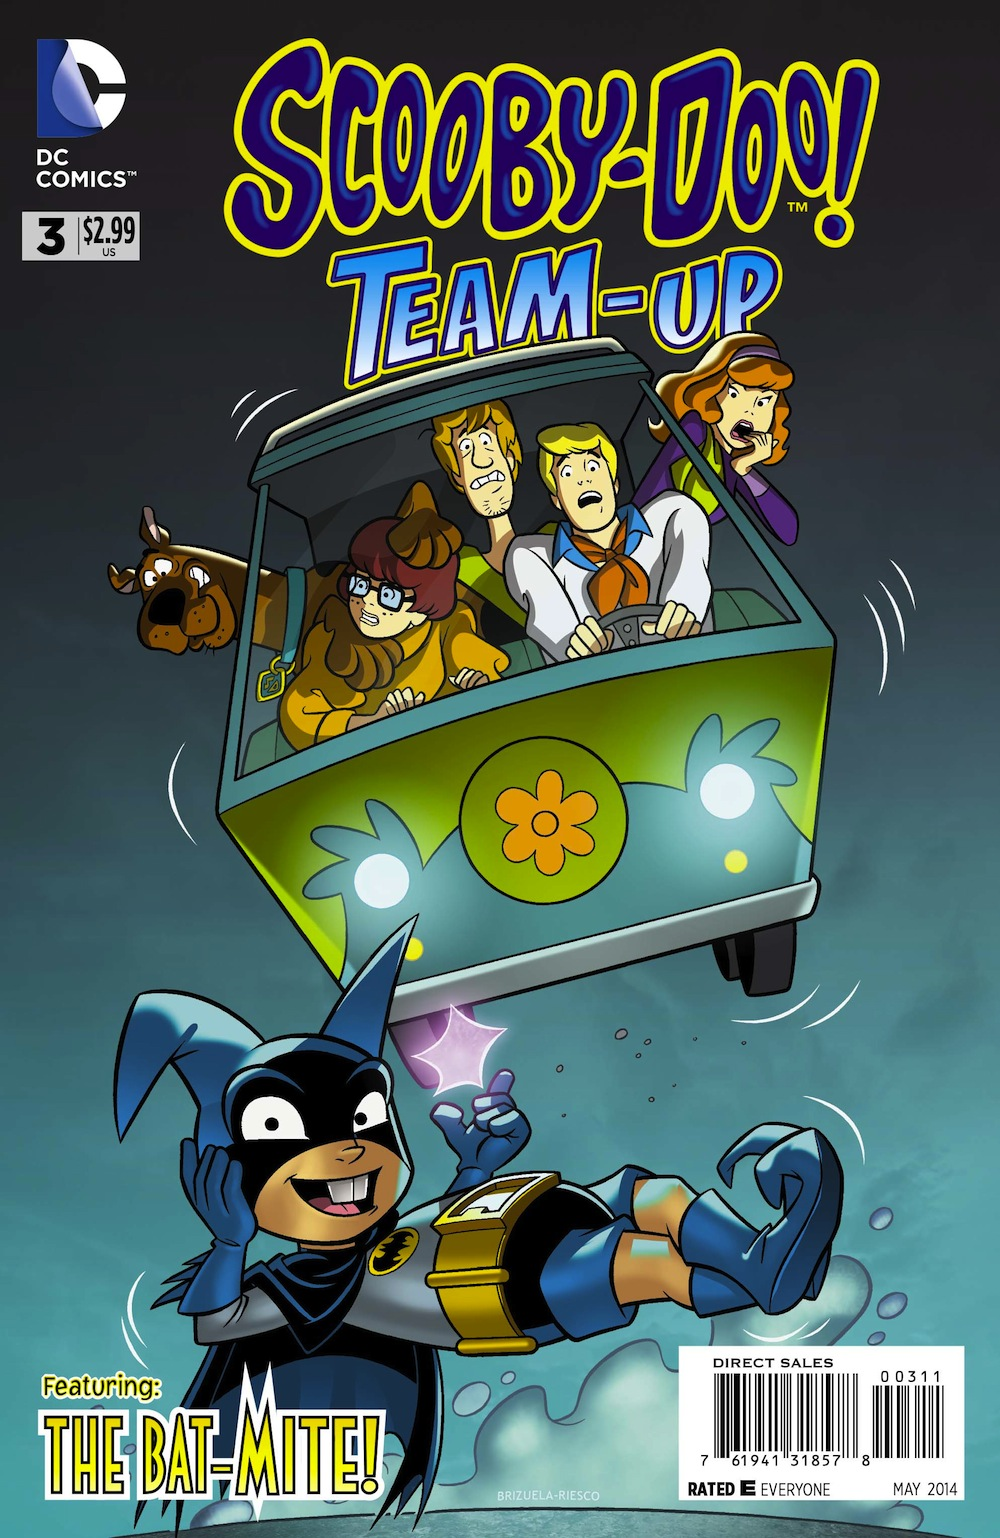 ScoobyDoo 3 TeamUp PrintCoverds Exclusive Preview: Scooby Doo Team Up #3